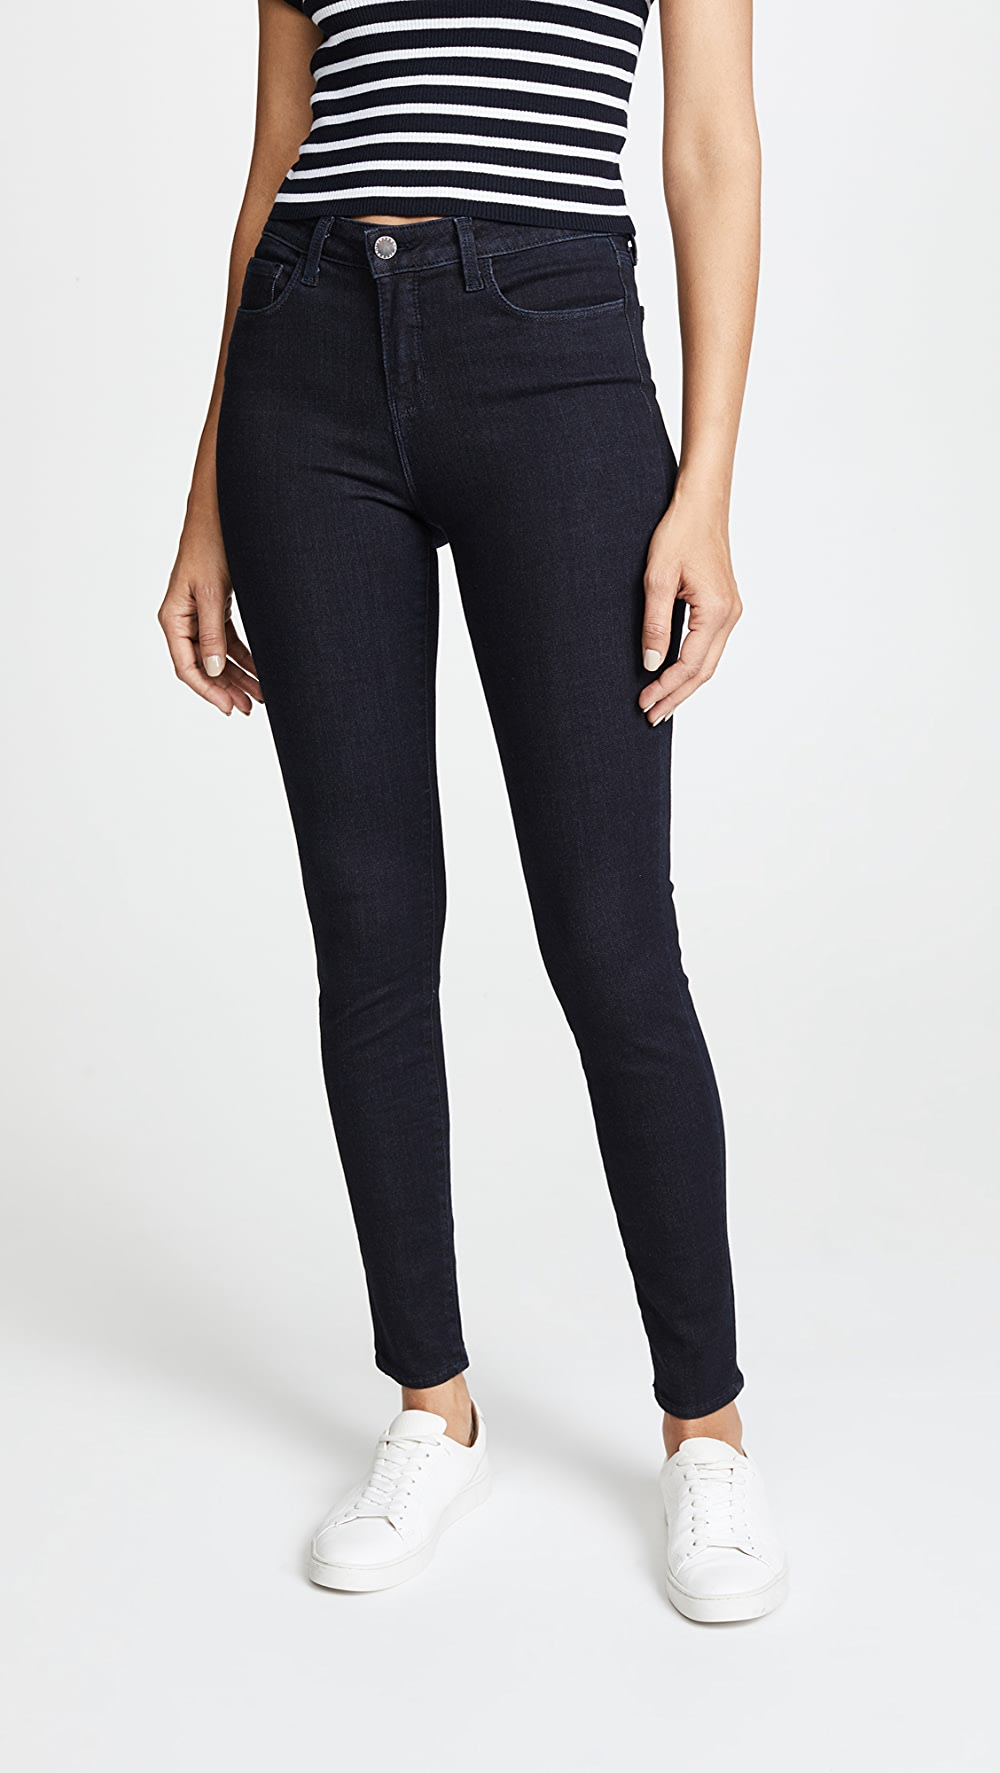 Steady L'agence - Marguerite High Rise Skinny Jeans Relieving Rheumatism